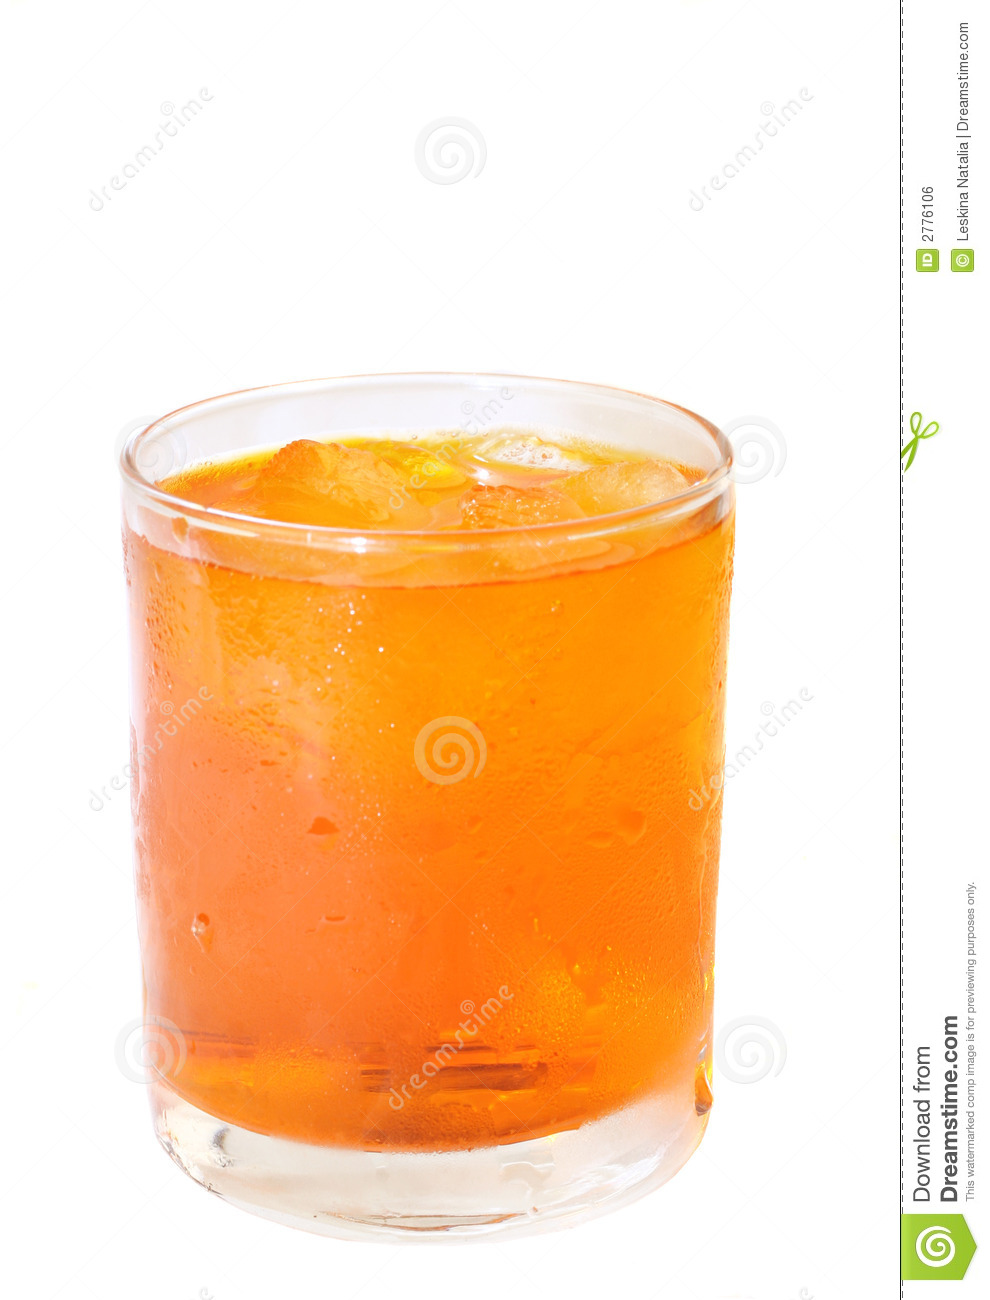 Orange drink with ice royalty free stock image image for Cocktail orange